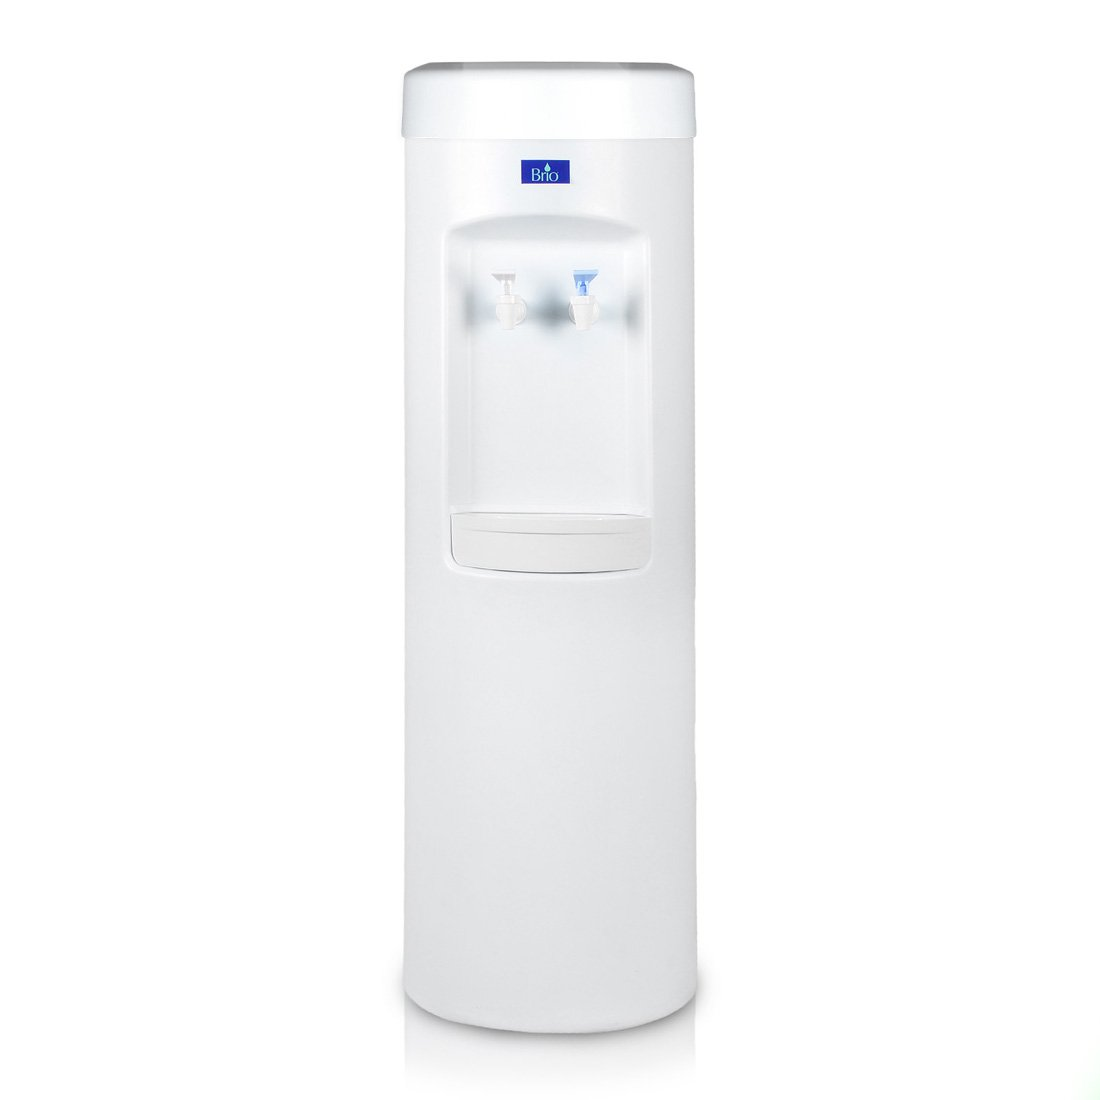 Brio Professional Commercial/Residential 500 Series Bottleless Water Dispenser Room-Temp & Cold (CL-505-POU) (White)